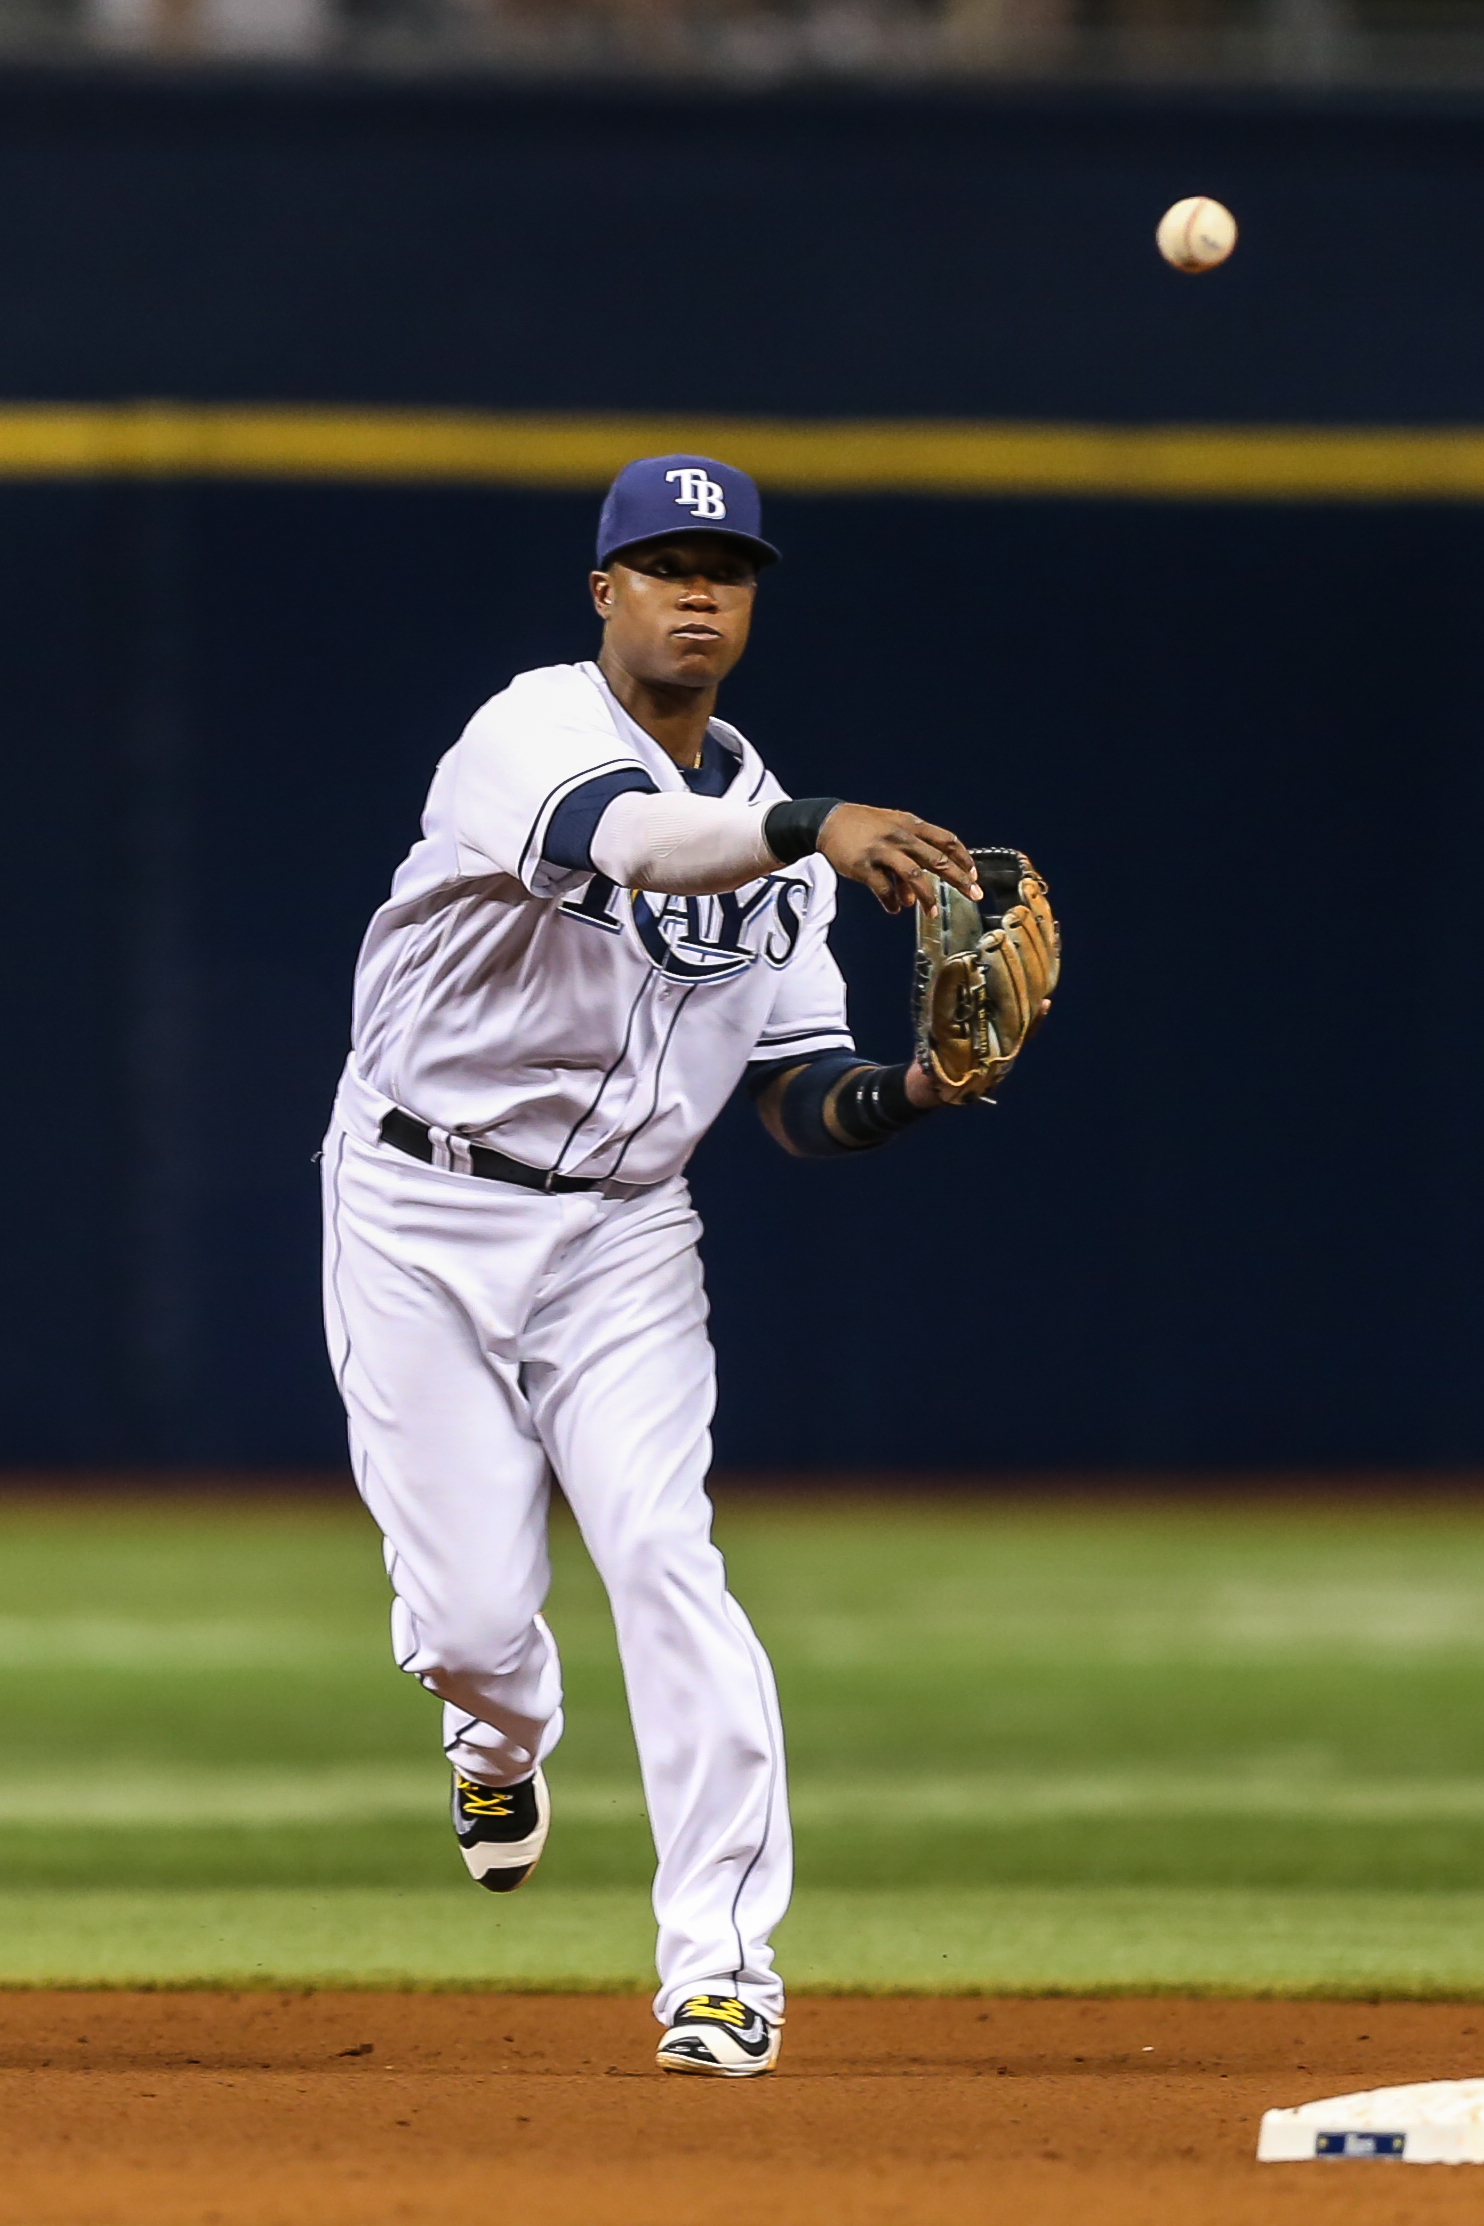 Tim Beckham will play more now that Logan Forsythe has a hairline fracture./TRAVIS PENDERGRASS